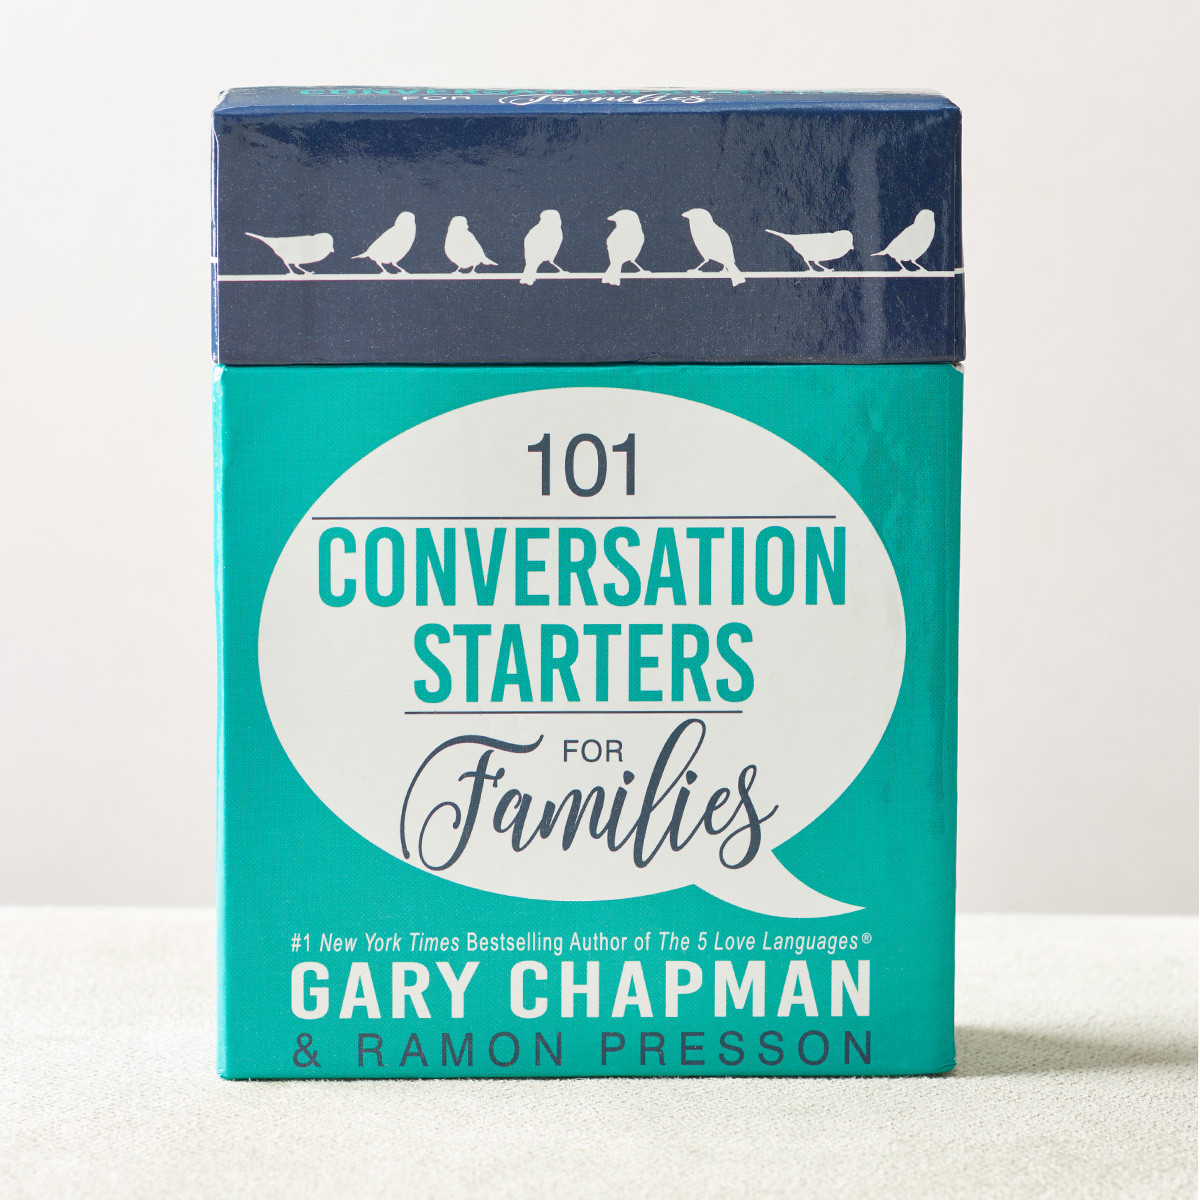 101 Conversation Starters For Families at Cru Media Ministry in Singapore